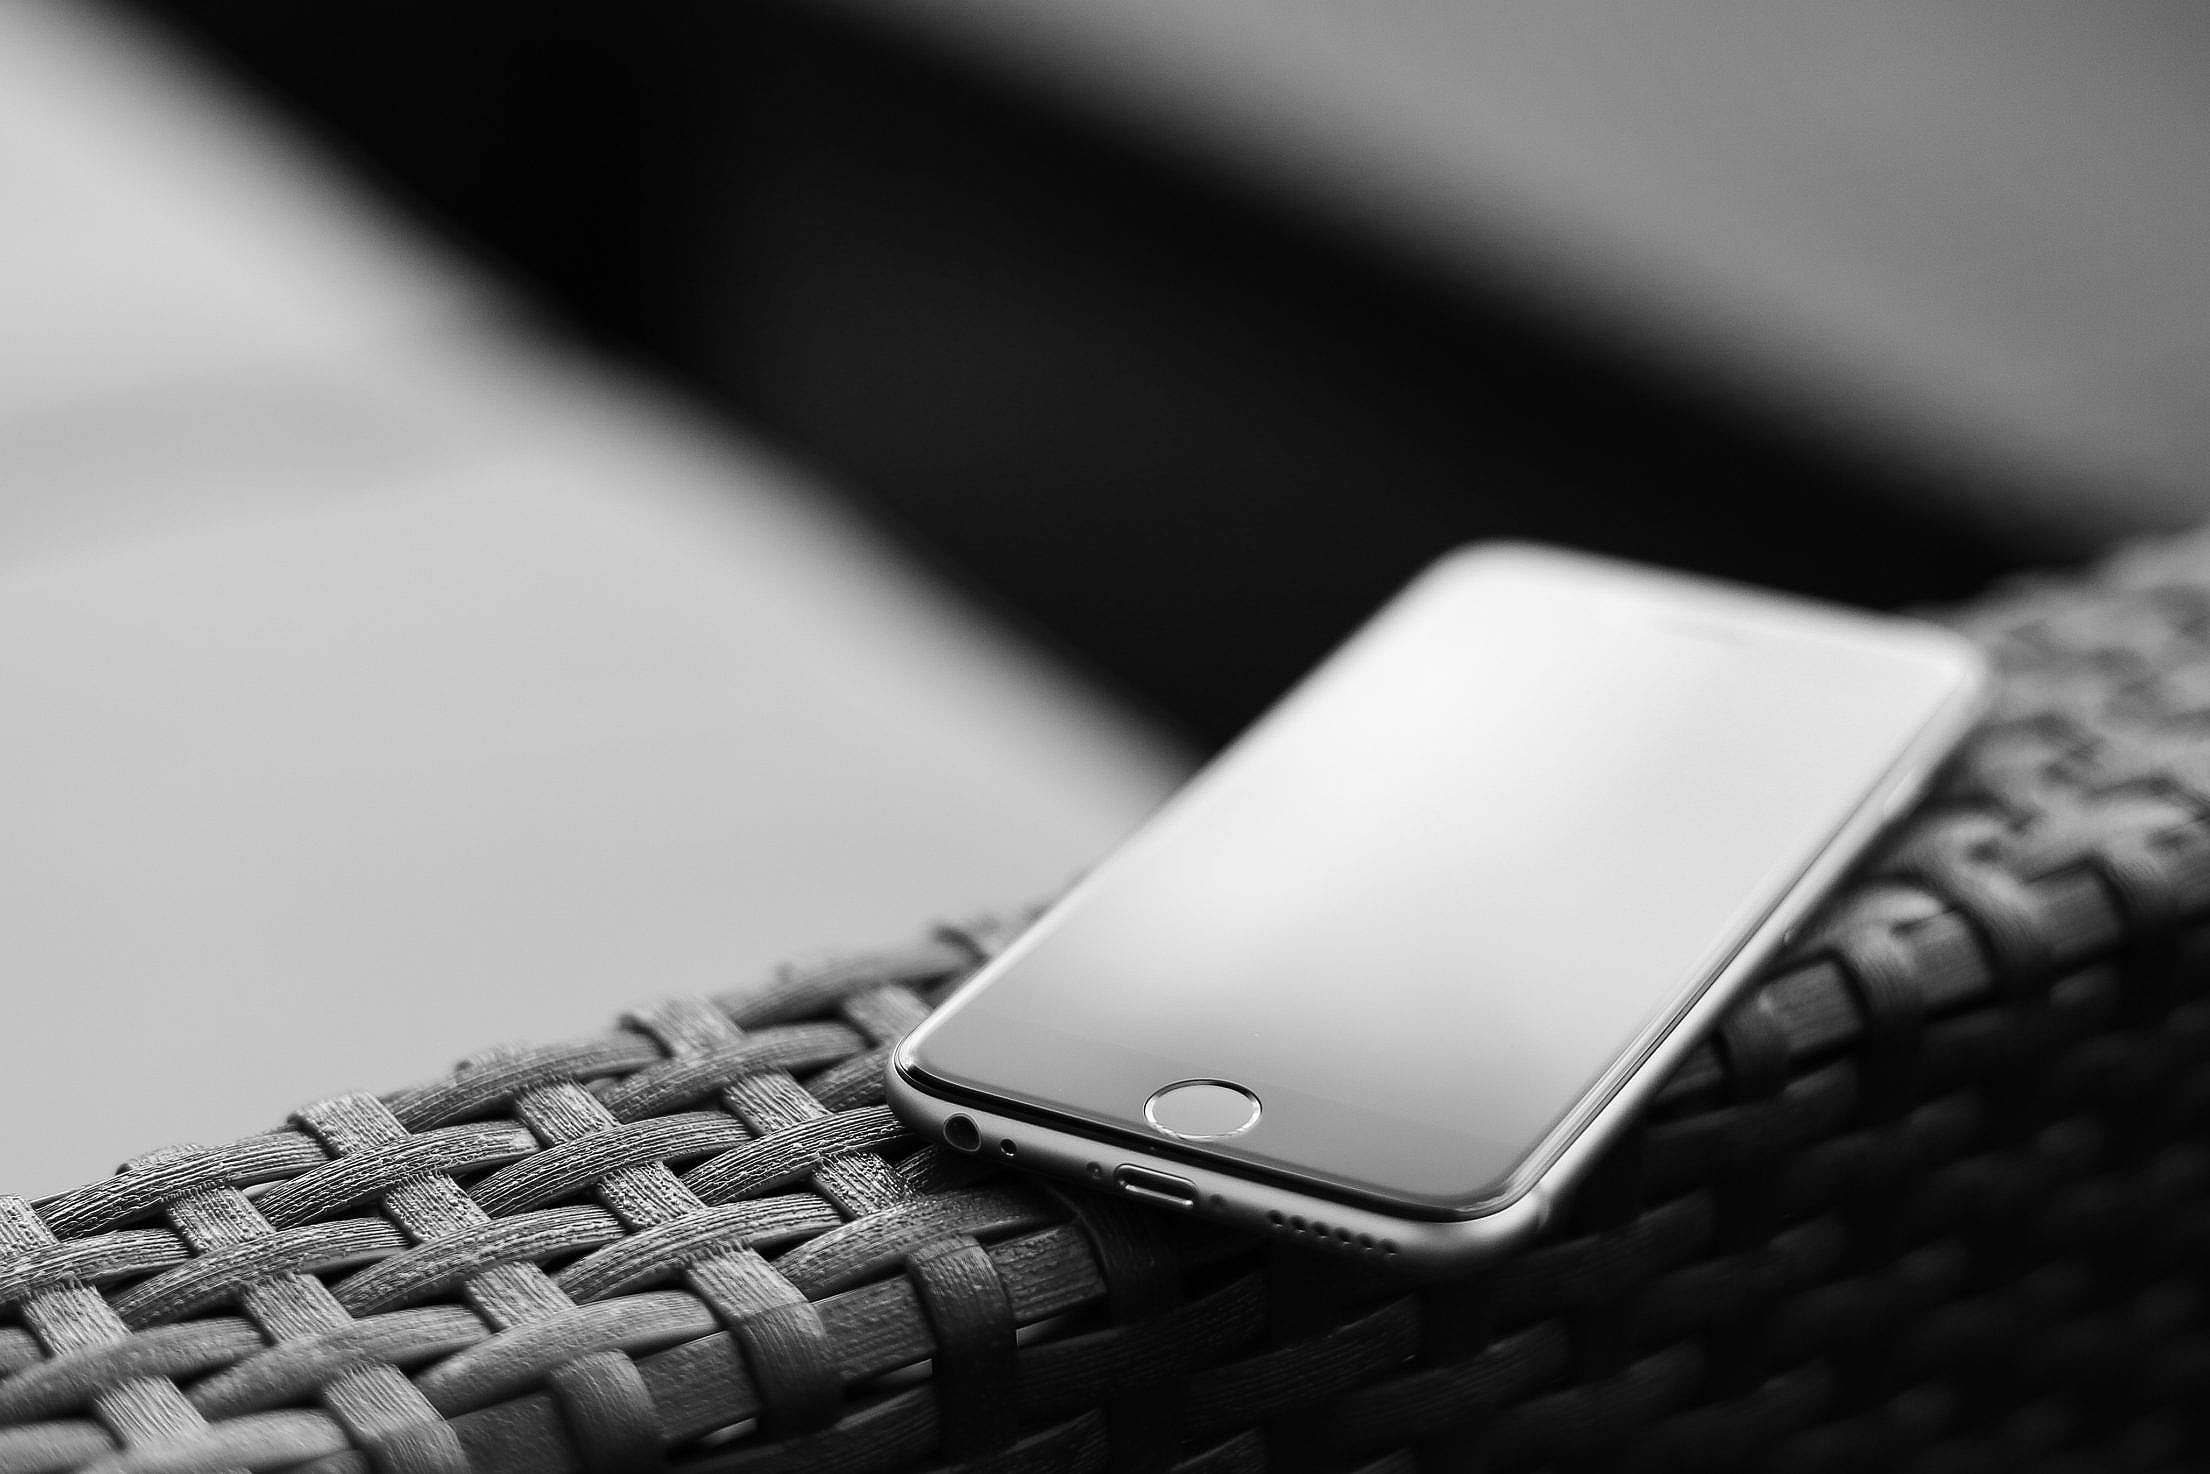 Download iPhone 6 in Black and White Edit Free Stock Photo